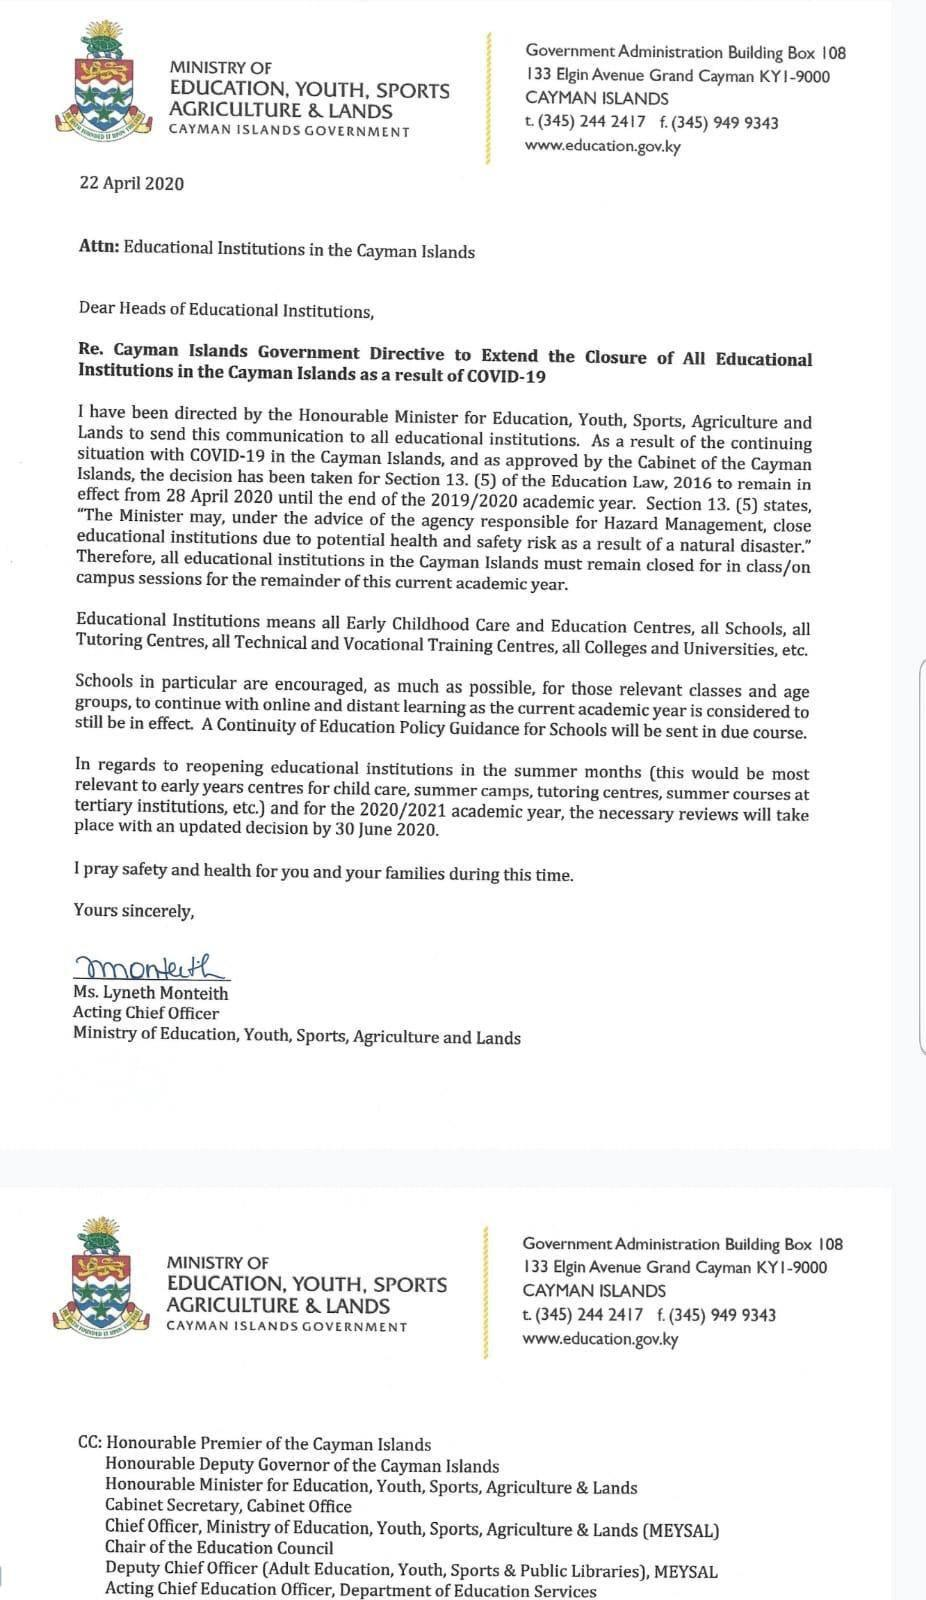 Letter from Education Ministry to Educational Institutions re closure to end of academic year, 22 April 2020